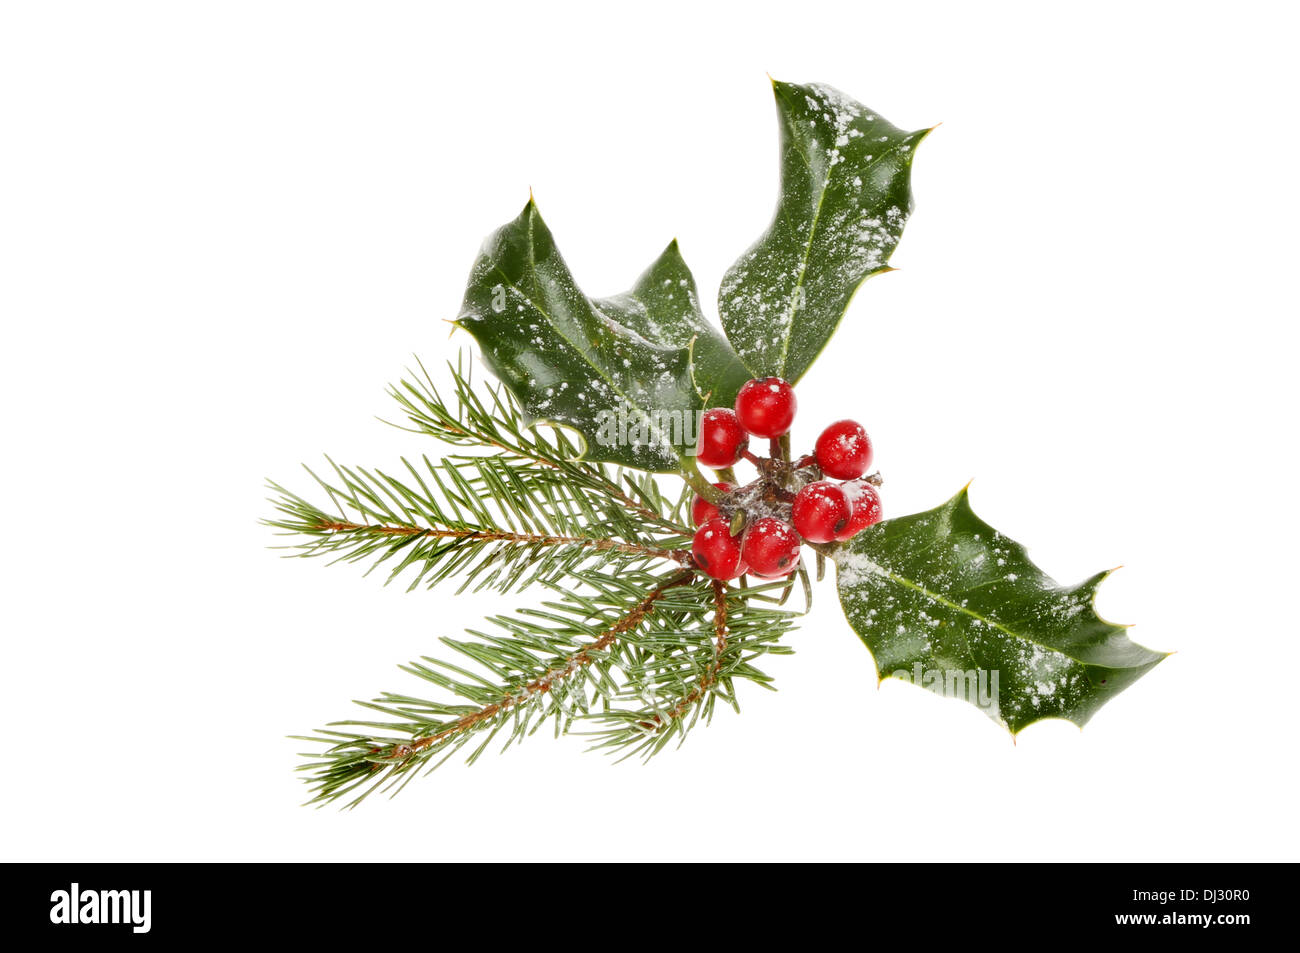 Snow dusted holly and pine needles isolated against white - Stock Image